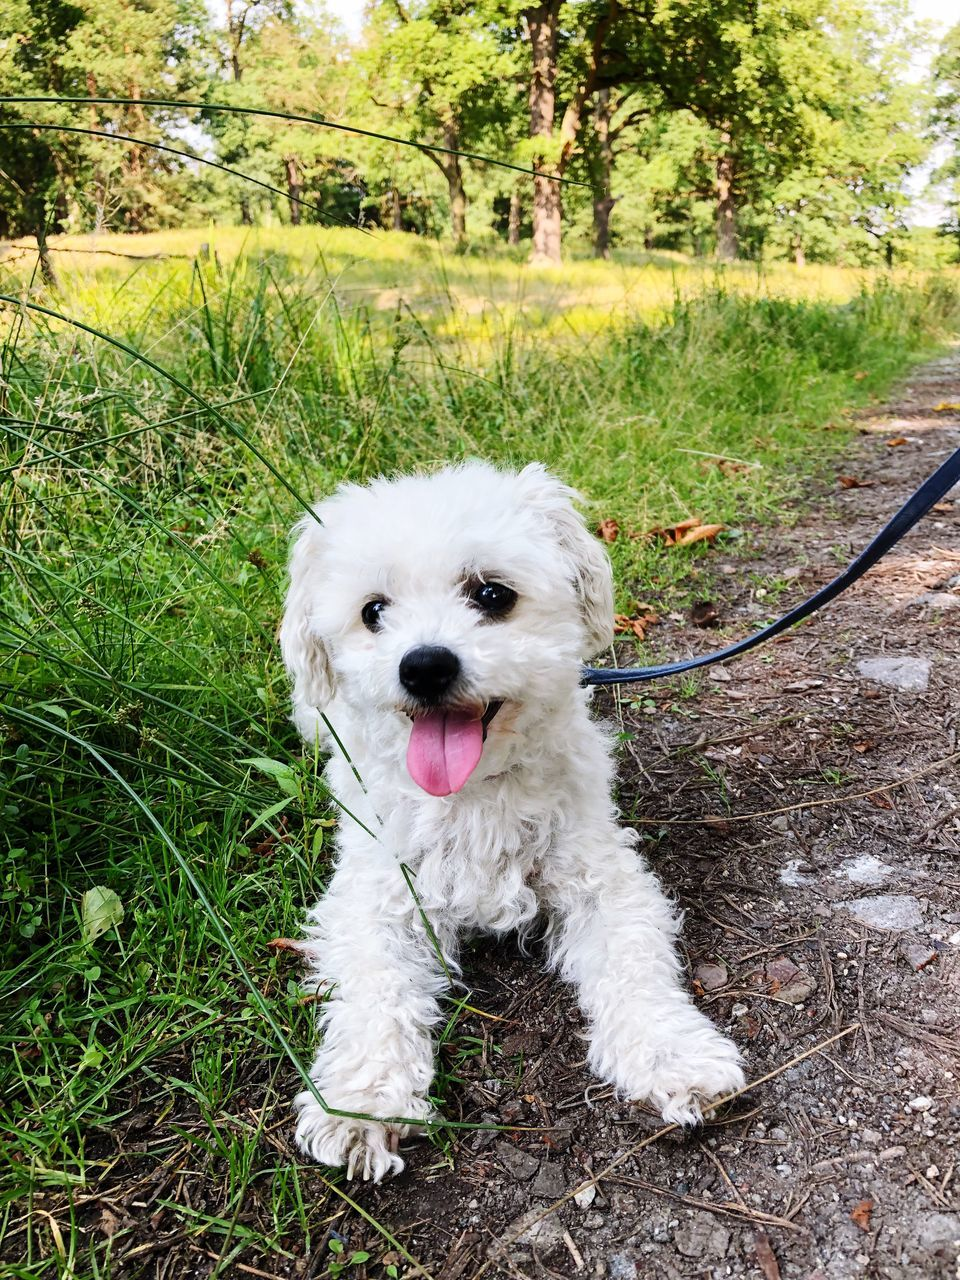 one animal, canine, dog, domestic, pets, animal themes, domestic animals, mammal, animal, plant, vertebrate, grass, day, nature, green color, land, white color, no people, field, leash, panting, outdoors, animal tongue, mouth open